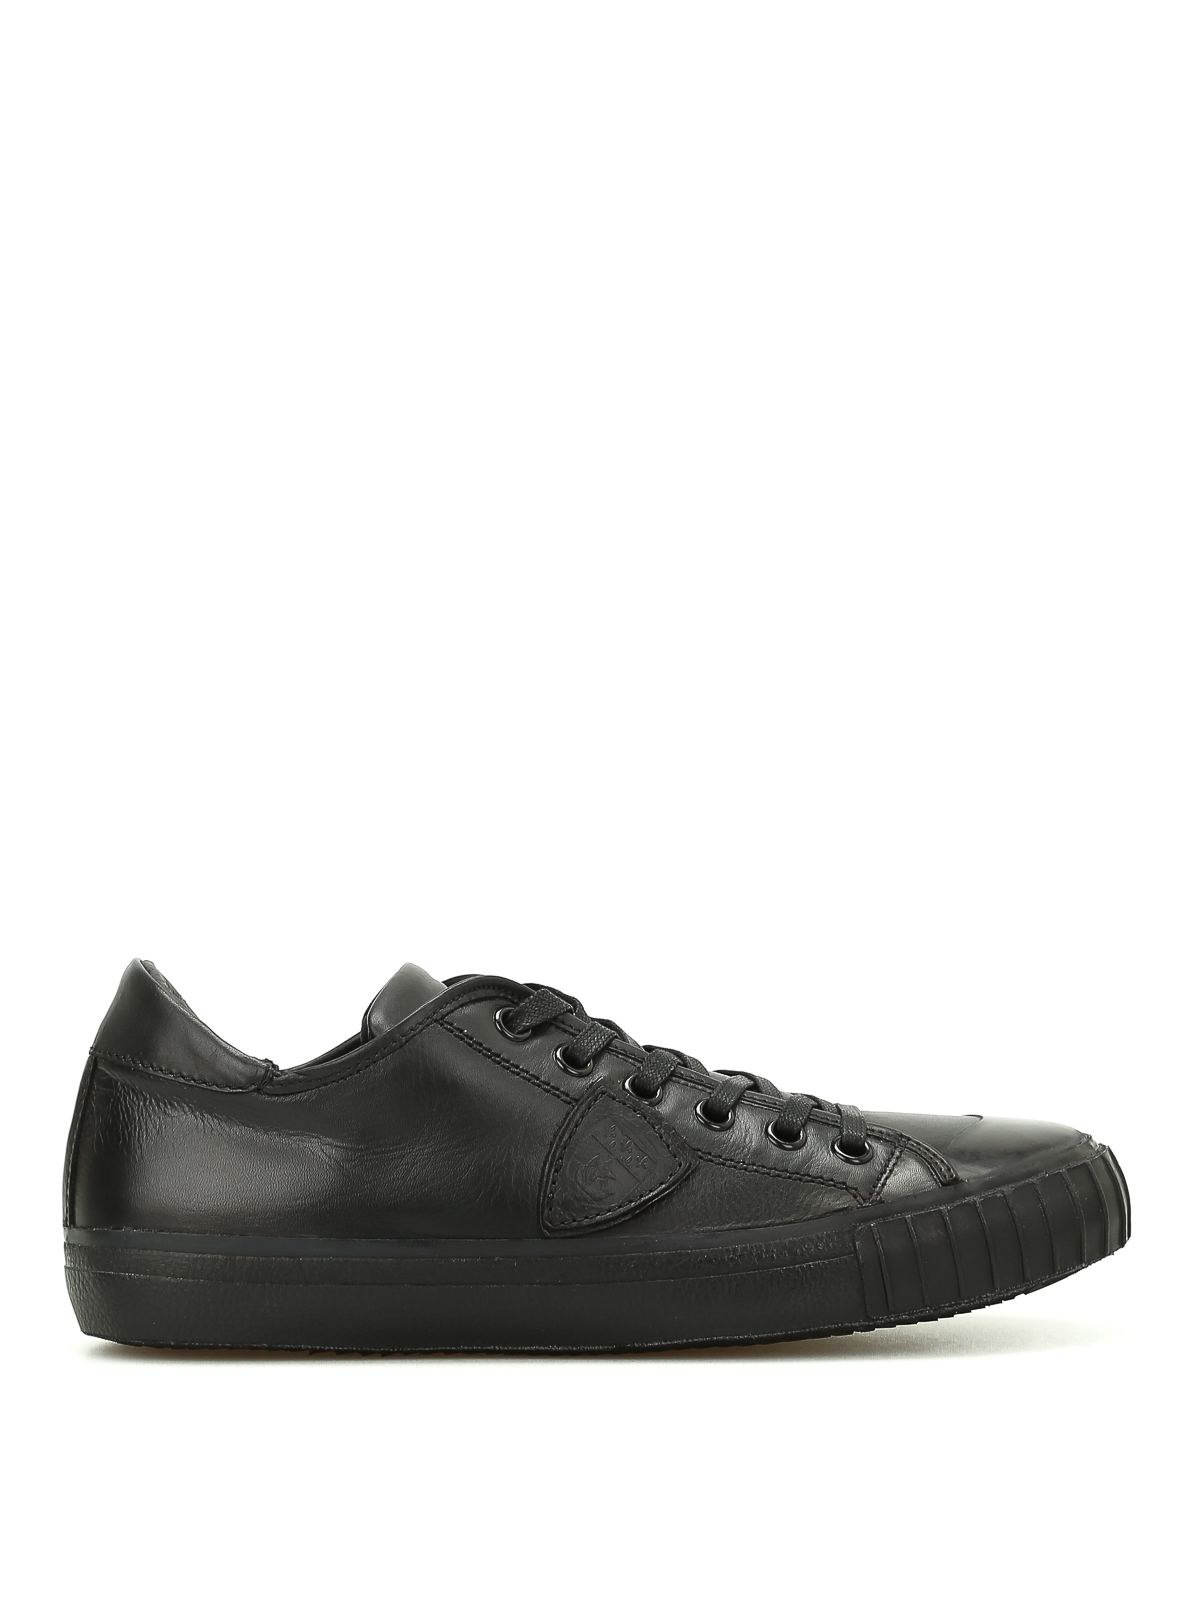 gare low top leather sneakers by philippe model trainers ikrix. Black Bedroom Furniture Sets. Home Design Ideas